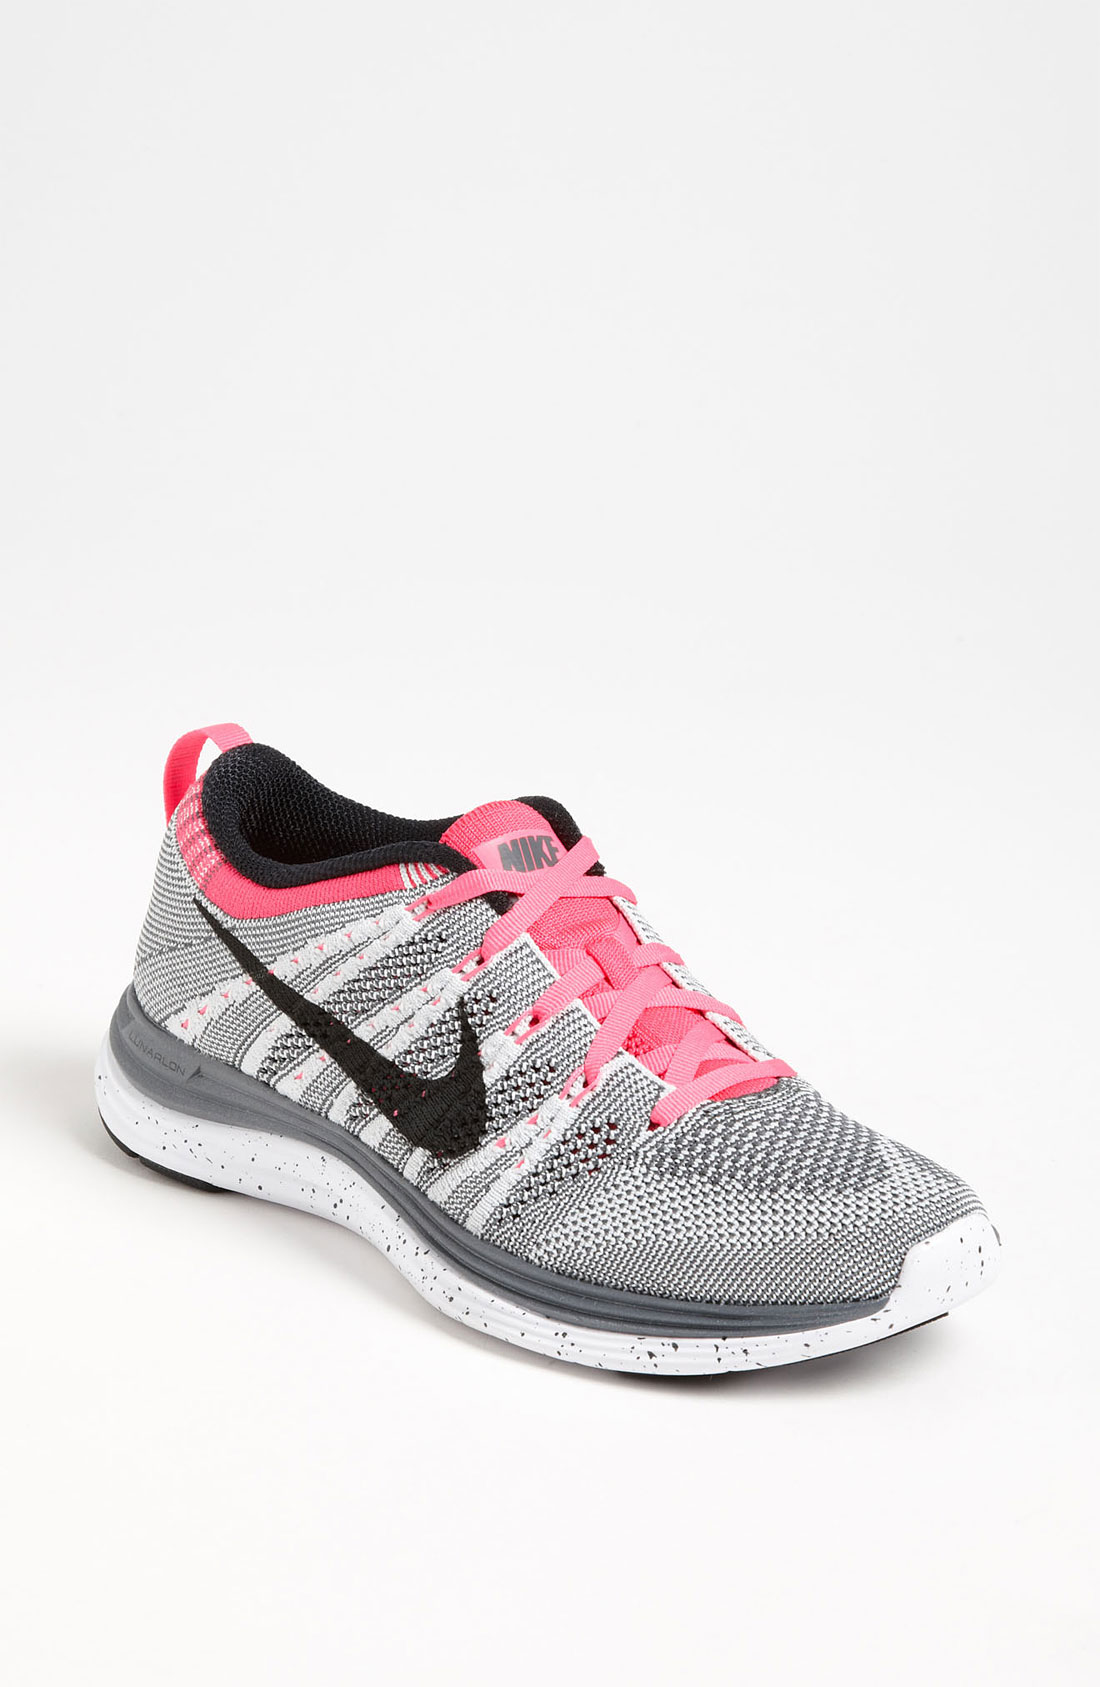 Wonderful This Brand Is On E Of The Most Affordable Running Shoes For Women Among Nike Shoxs Product Line They Are Usually Sold In Medium Grey Color, Sonic Yellow, Or Pretty Pink, And Is Usually Made From Hardened Polyester In Amazon,